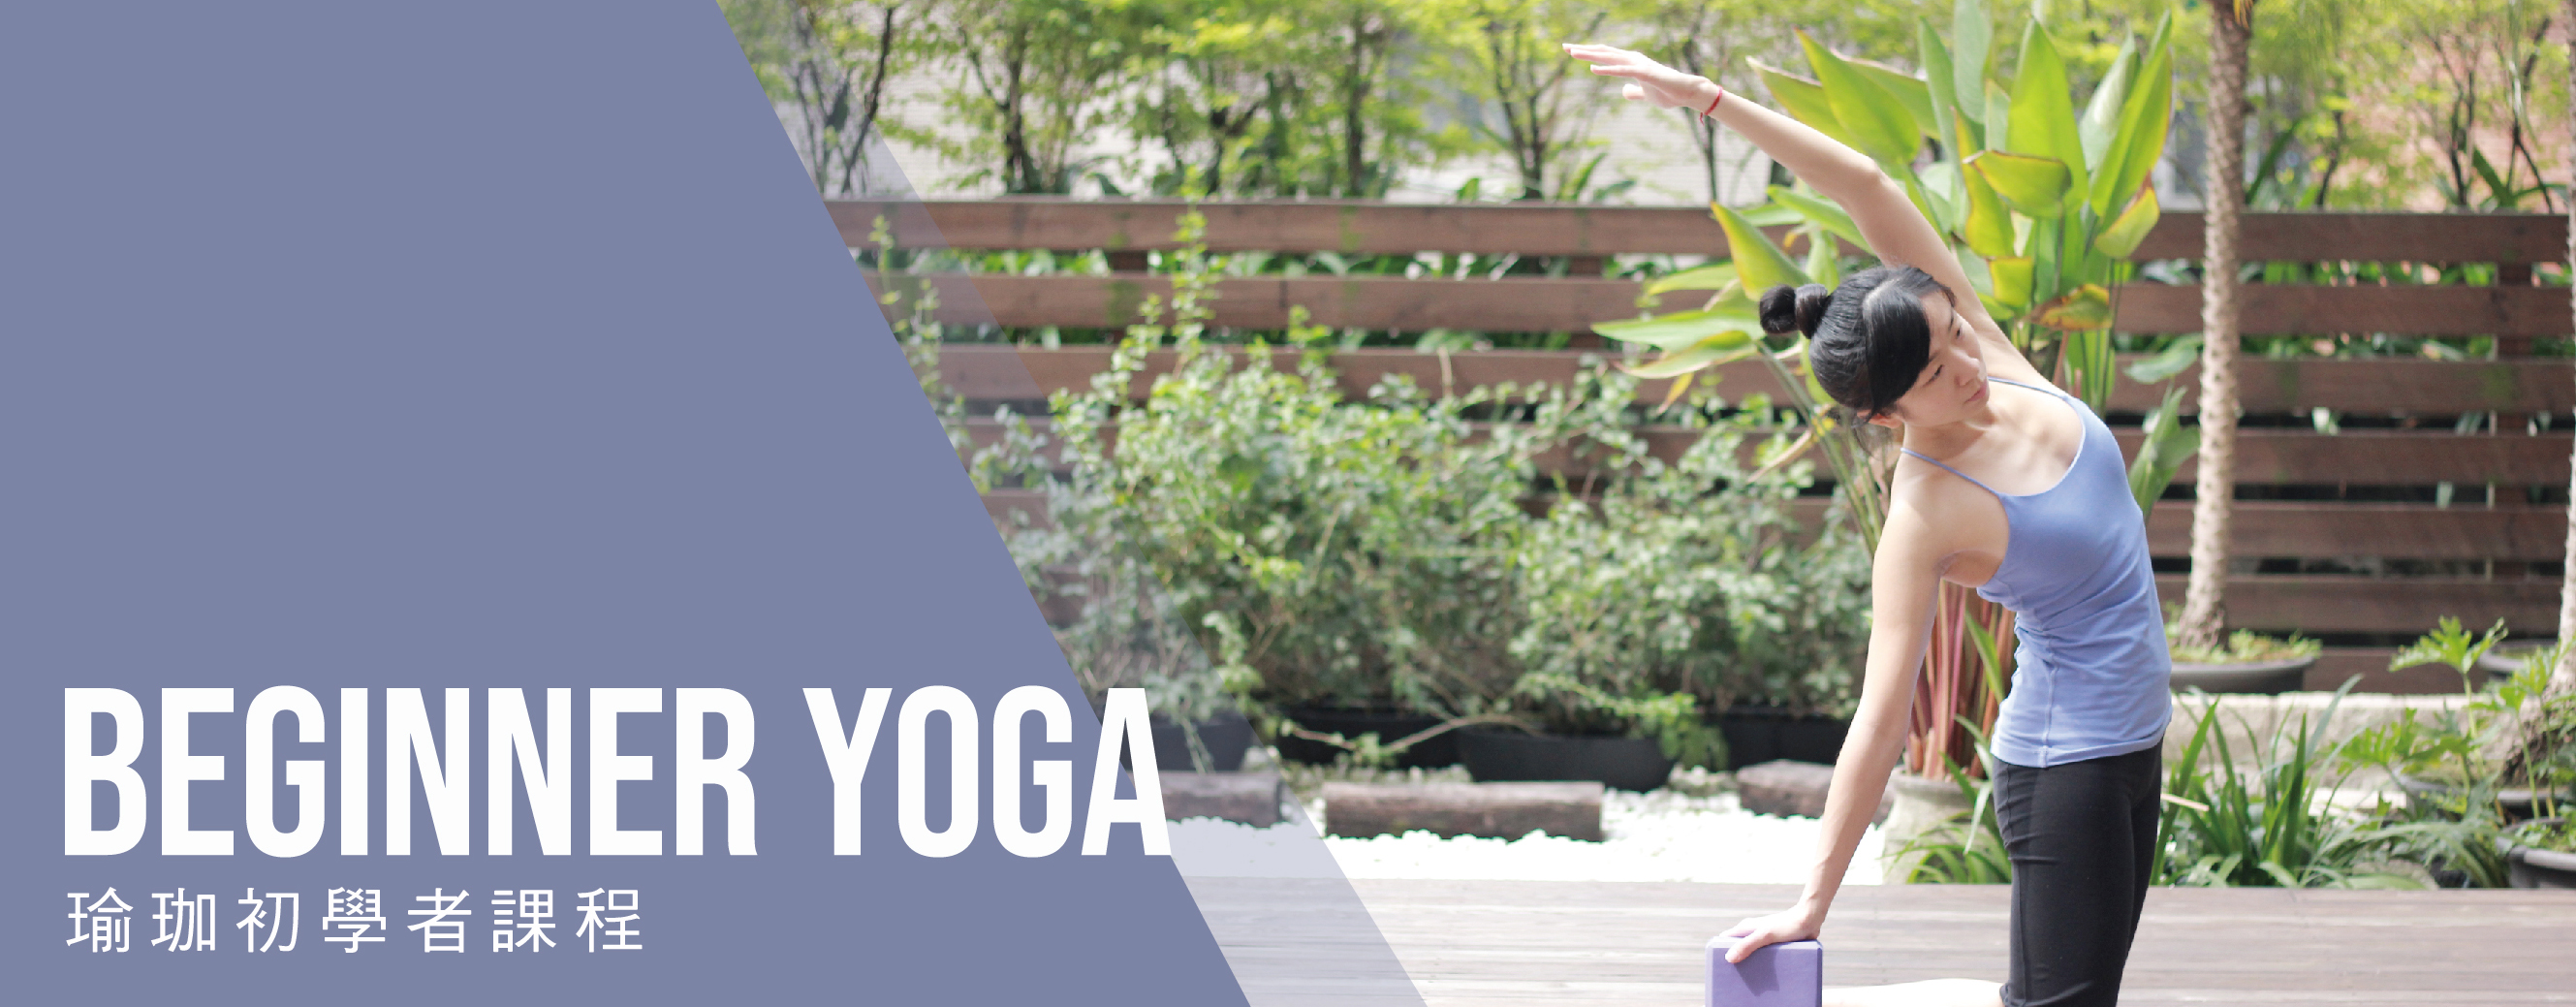 beginner yoga yoga journey